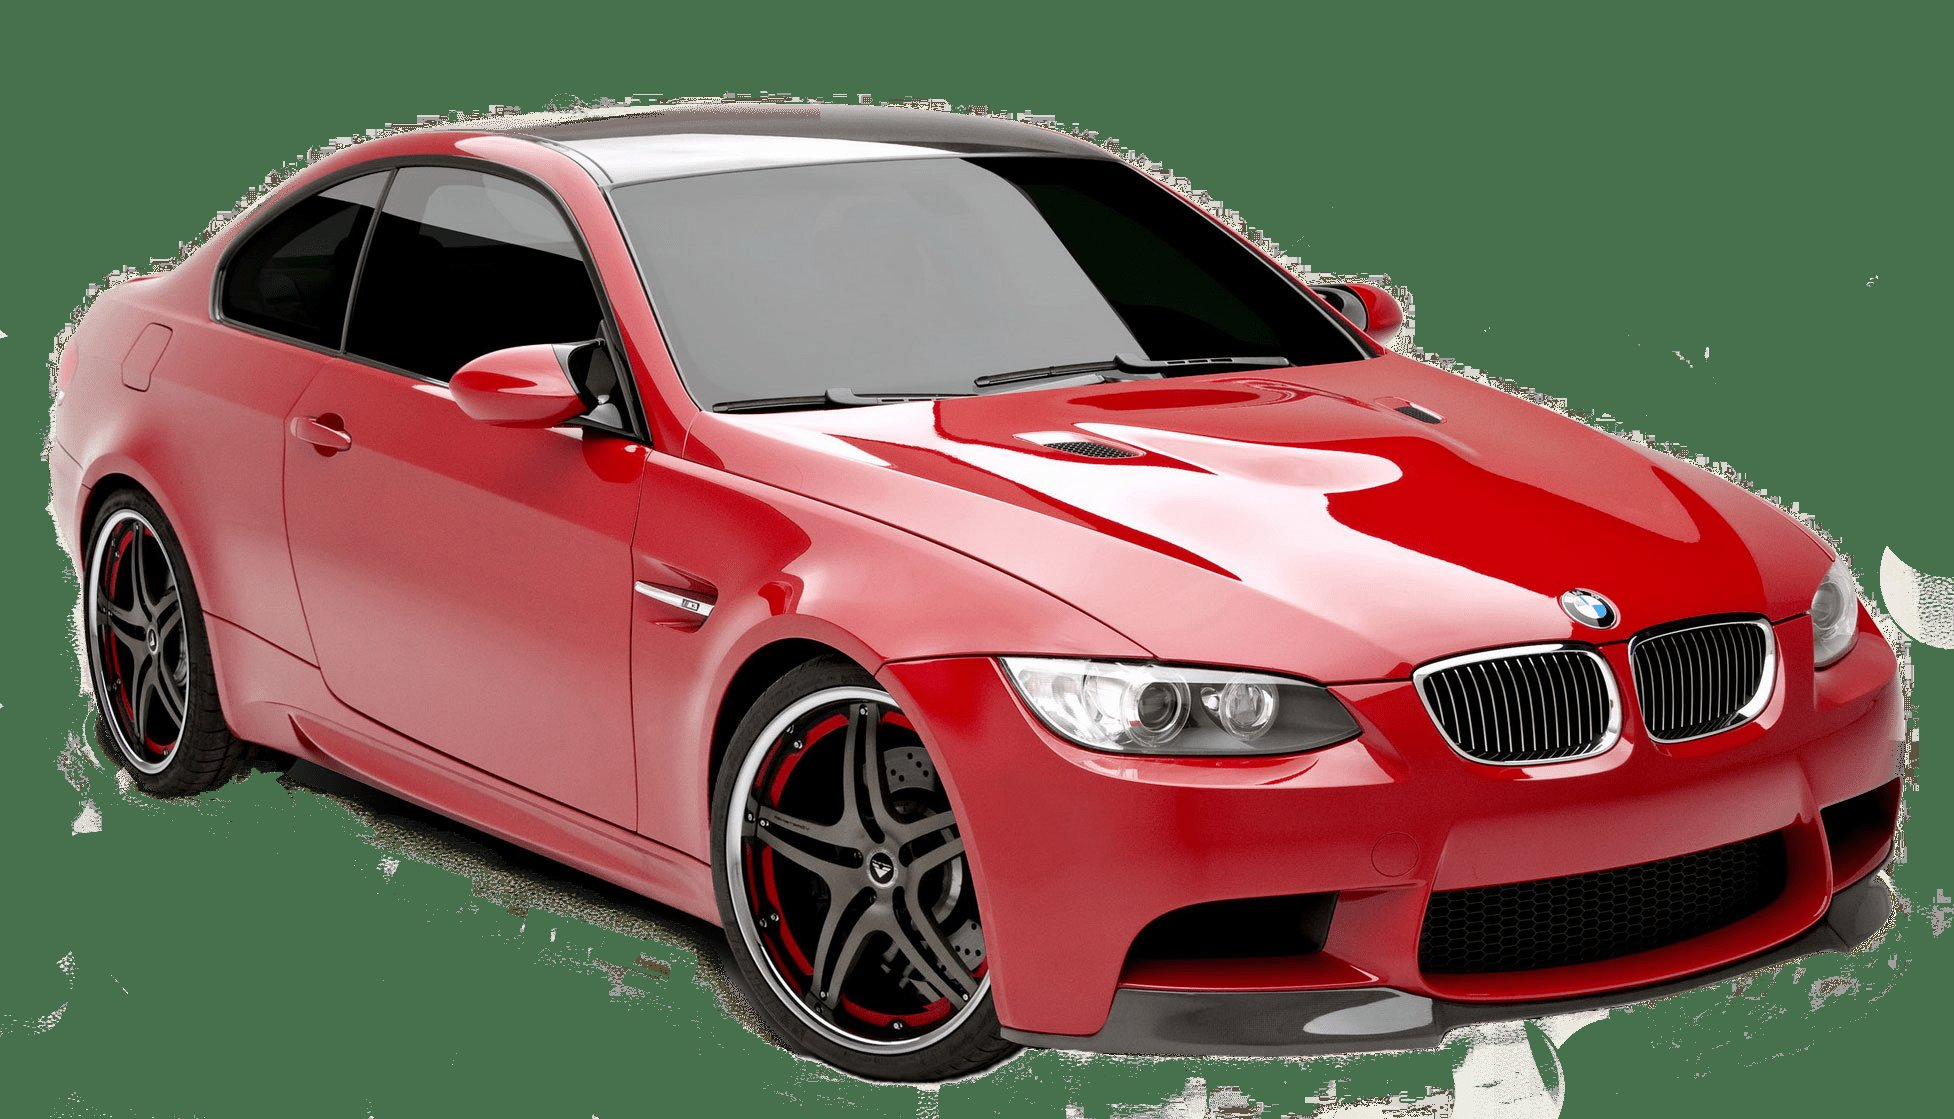 Latest Download Bmw Picture Hq Png Image Freepngimg Free Download